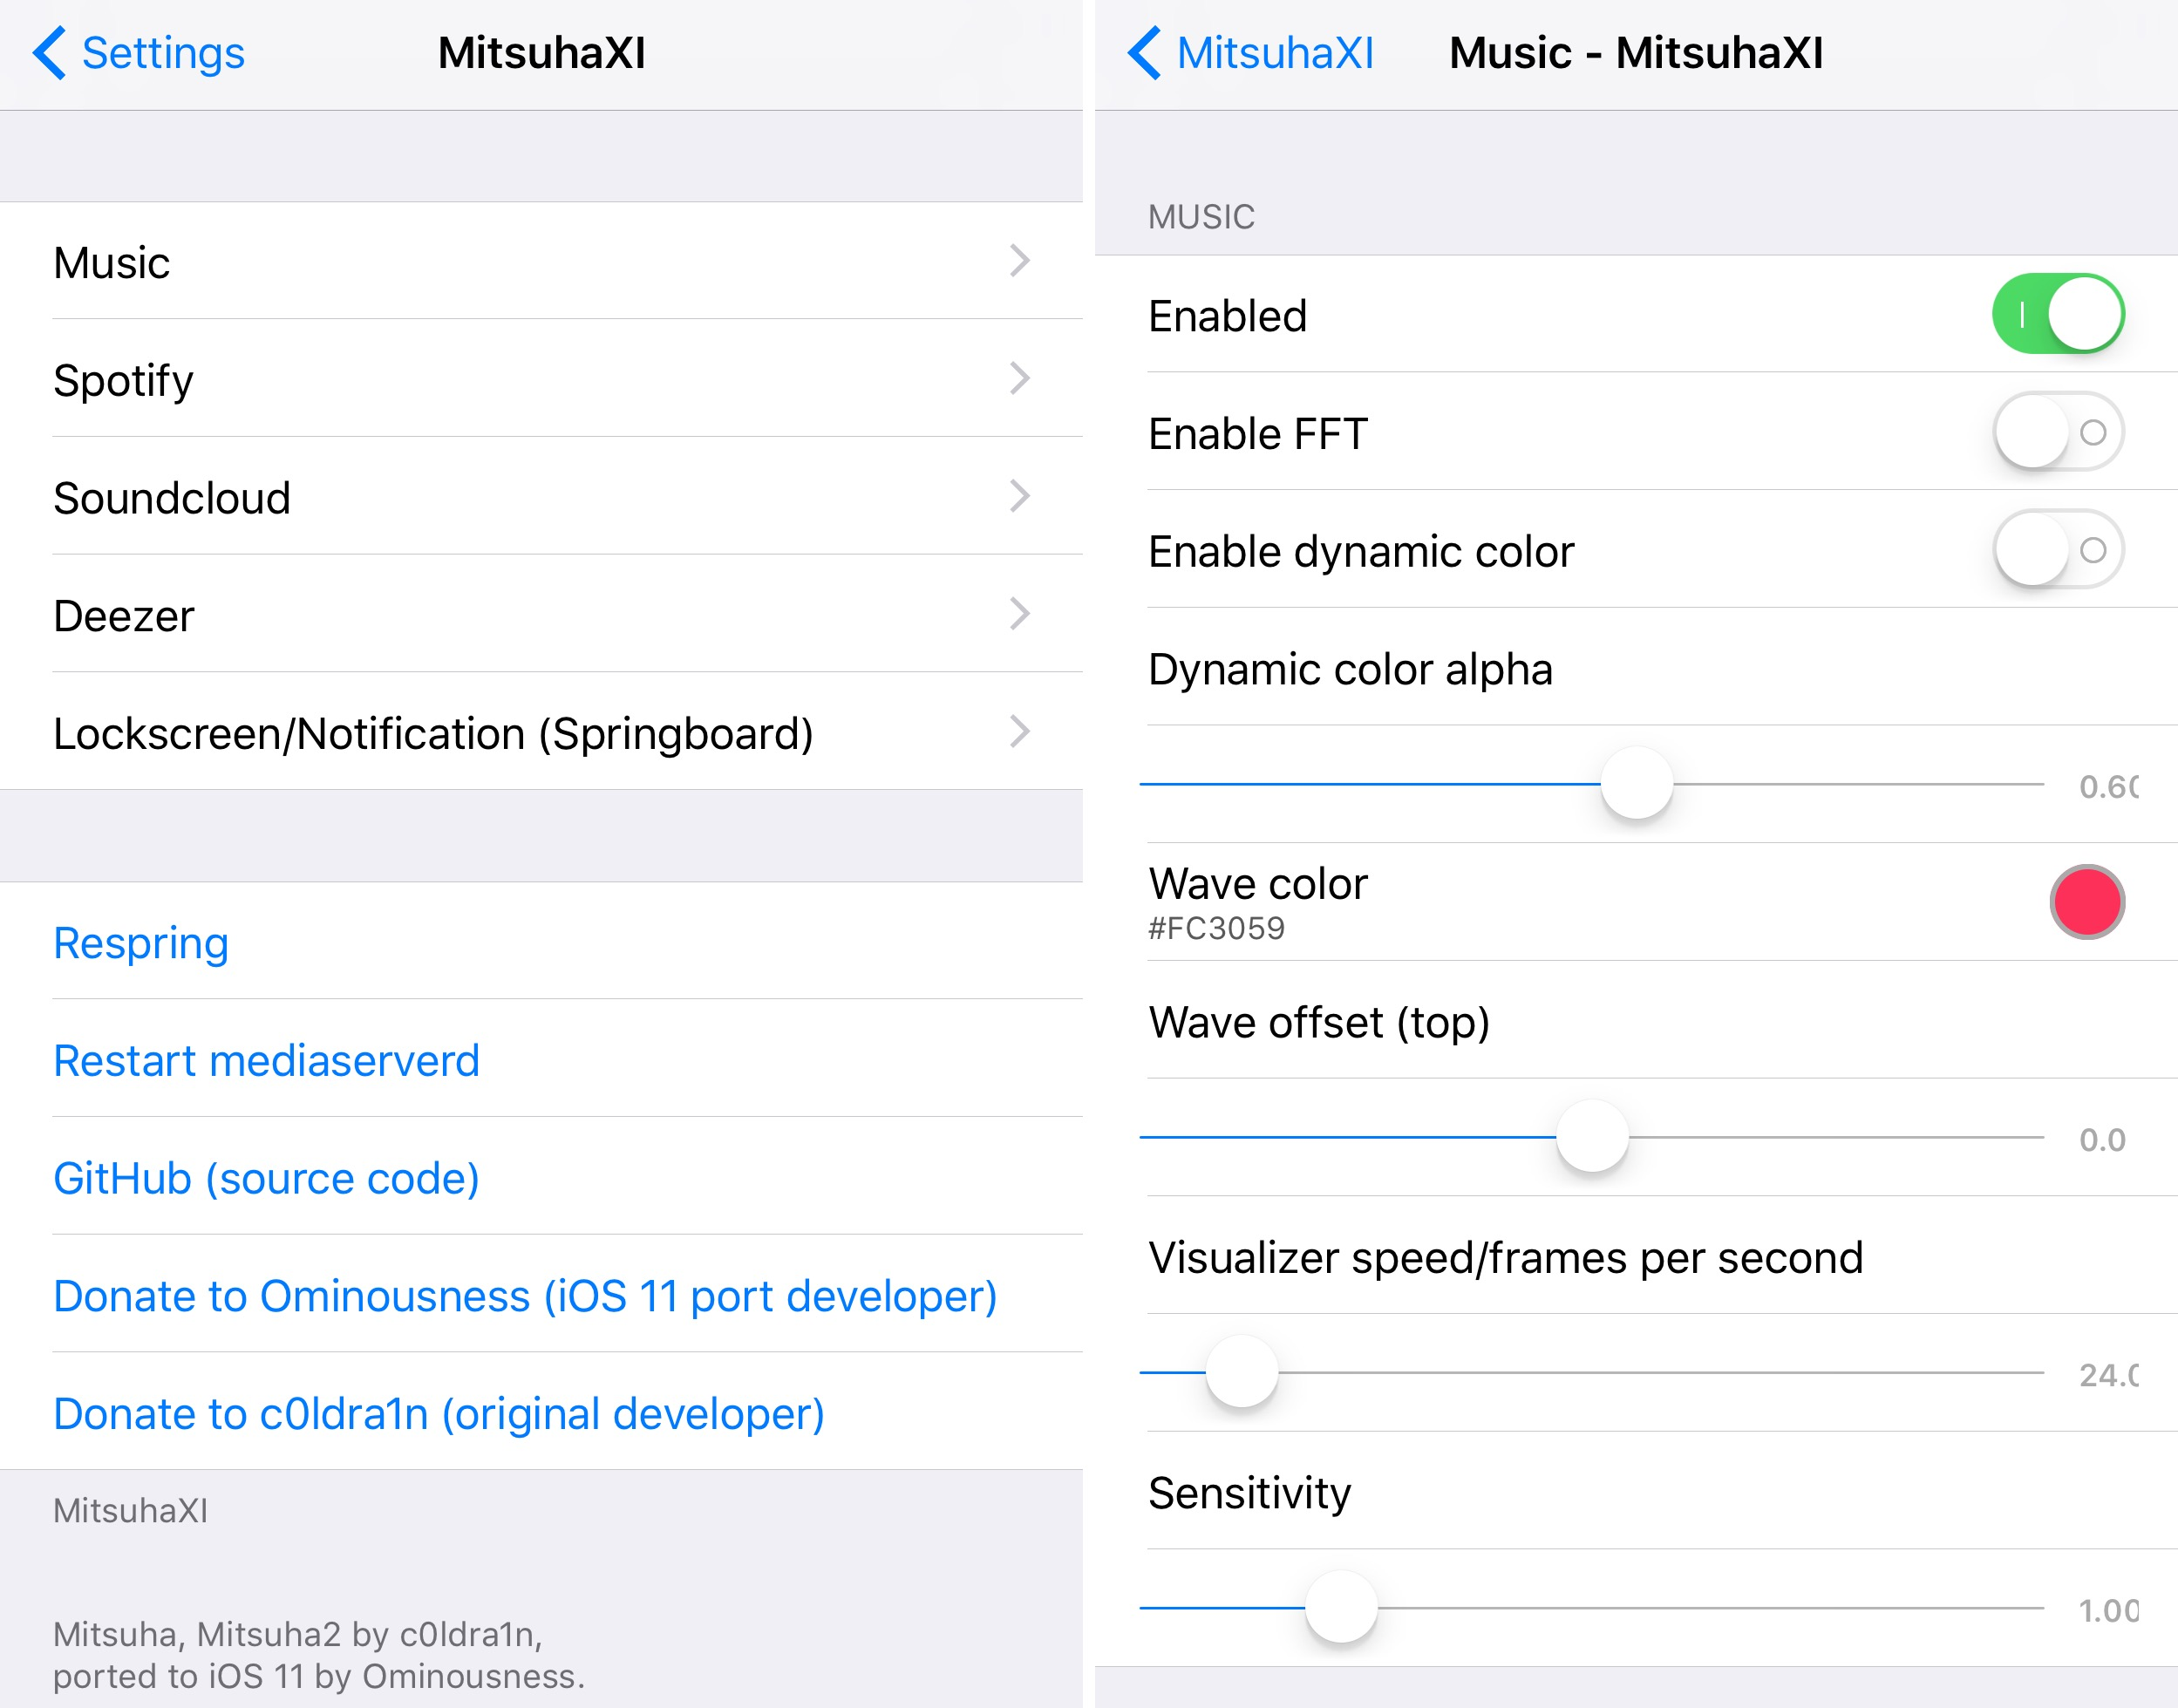 MitsuhaXI brings an audio visualizer to jailbroken iOS 11 devices